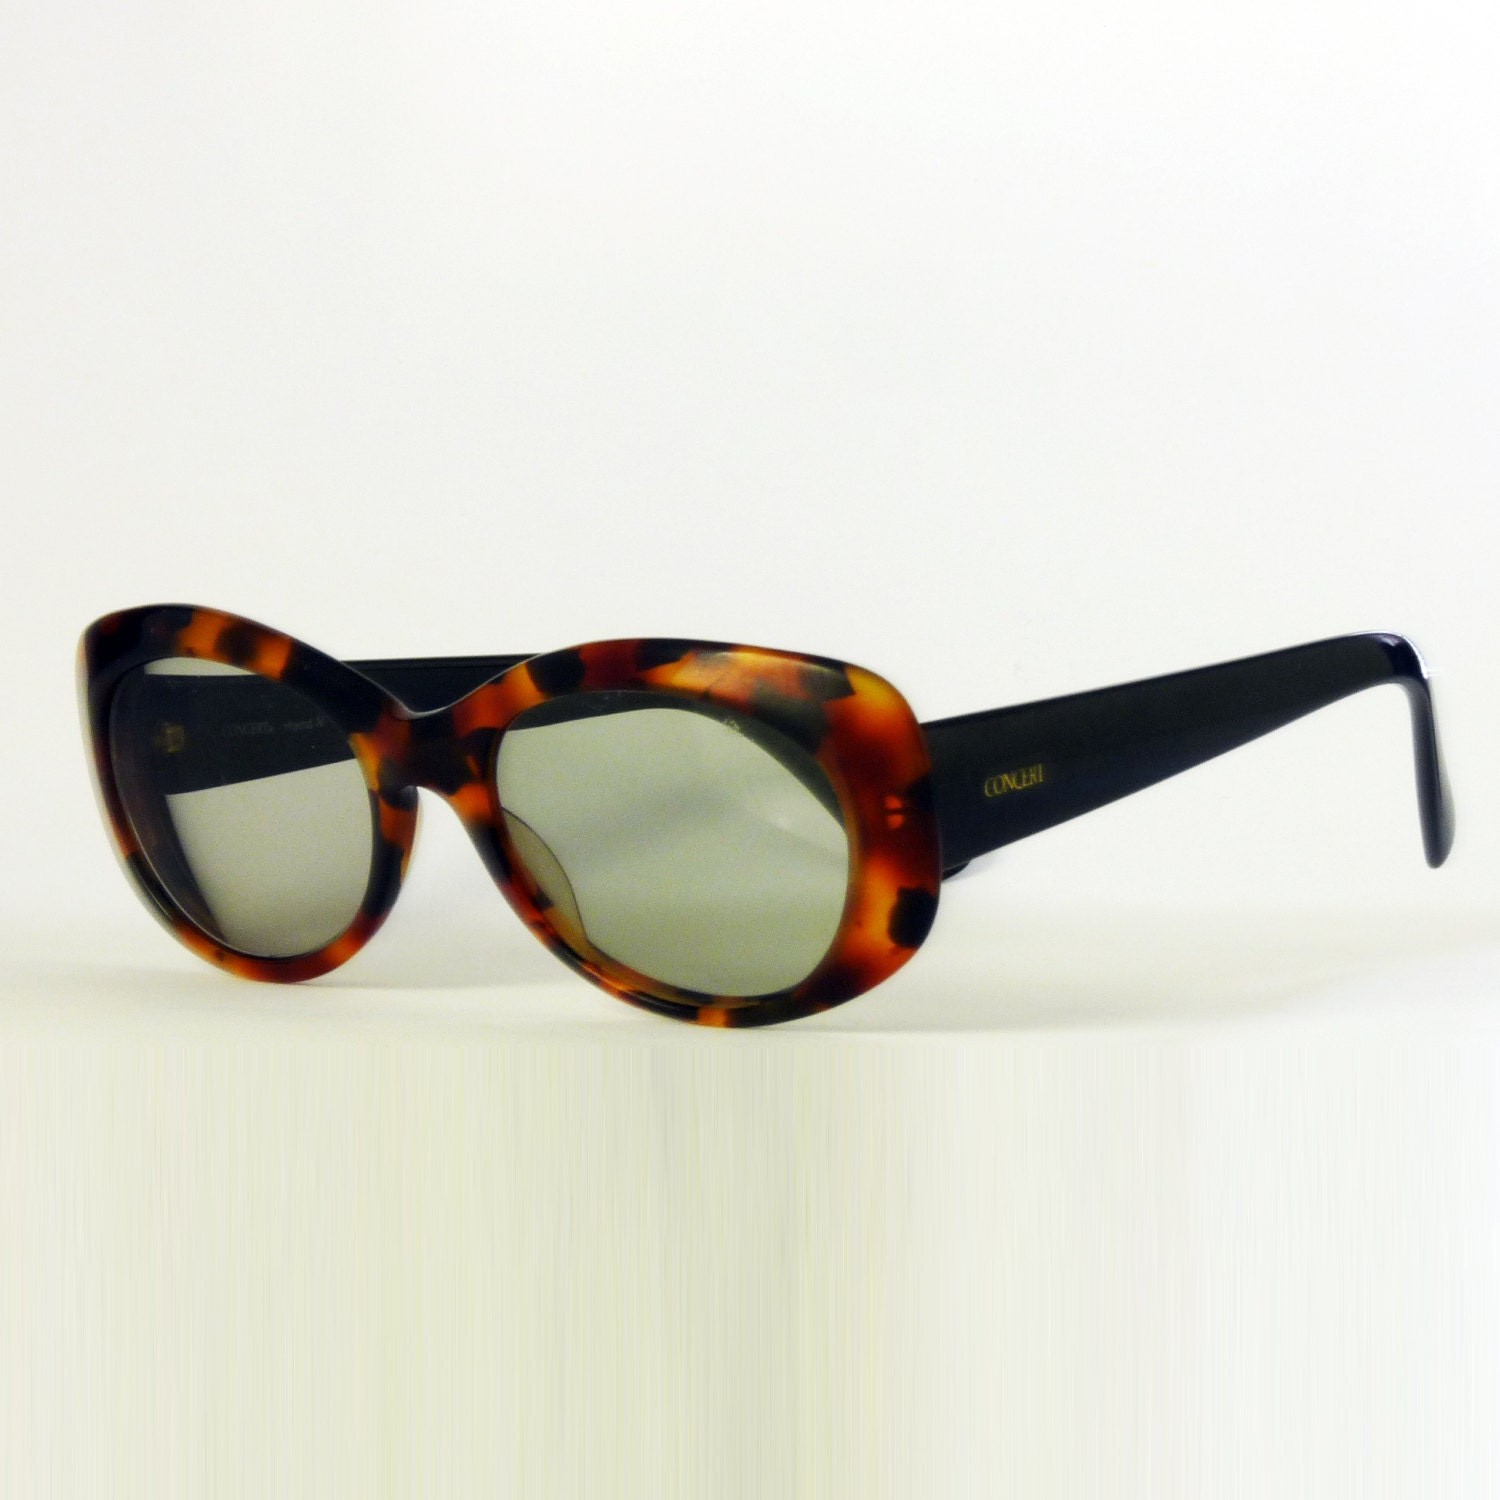 concert oval sunglasses womens sunglasses vintage sunglasses tortoise shell glasses 80s frame